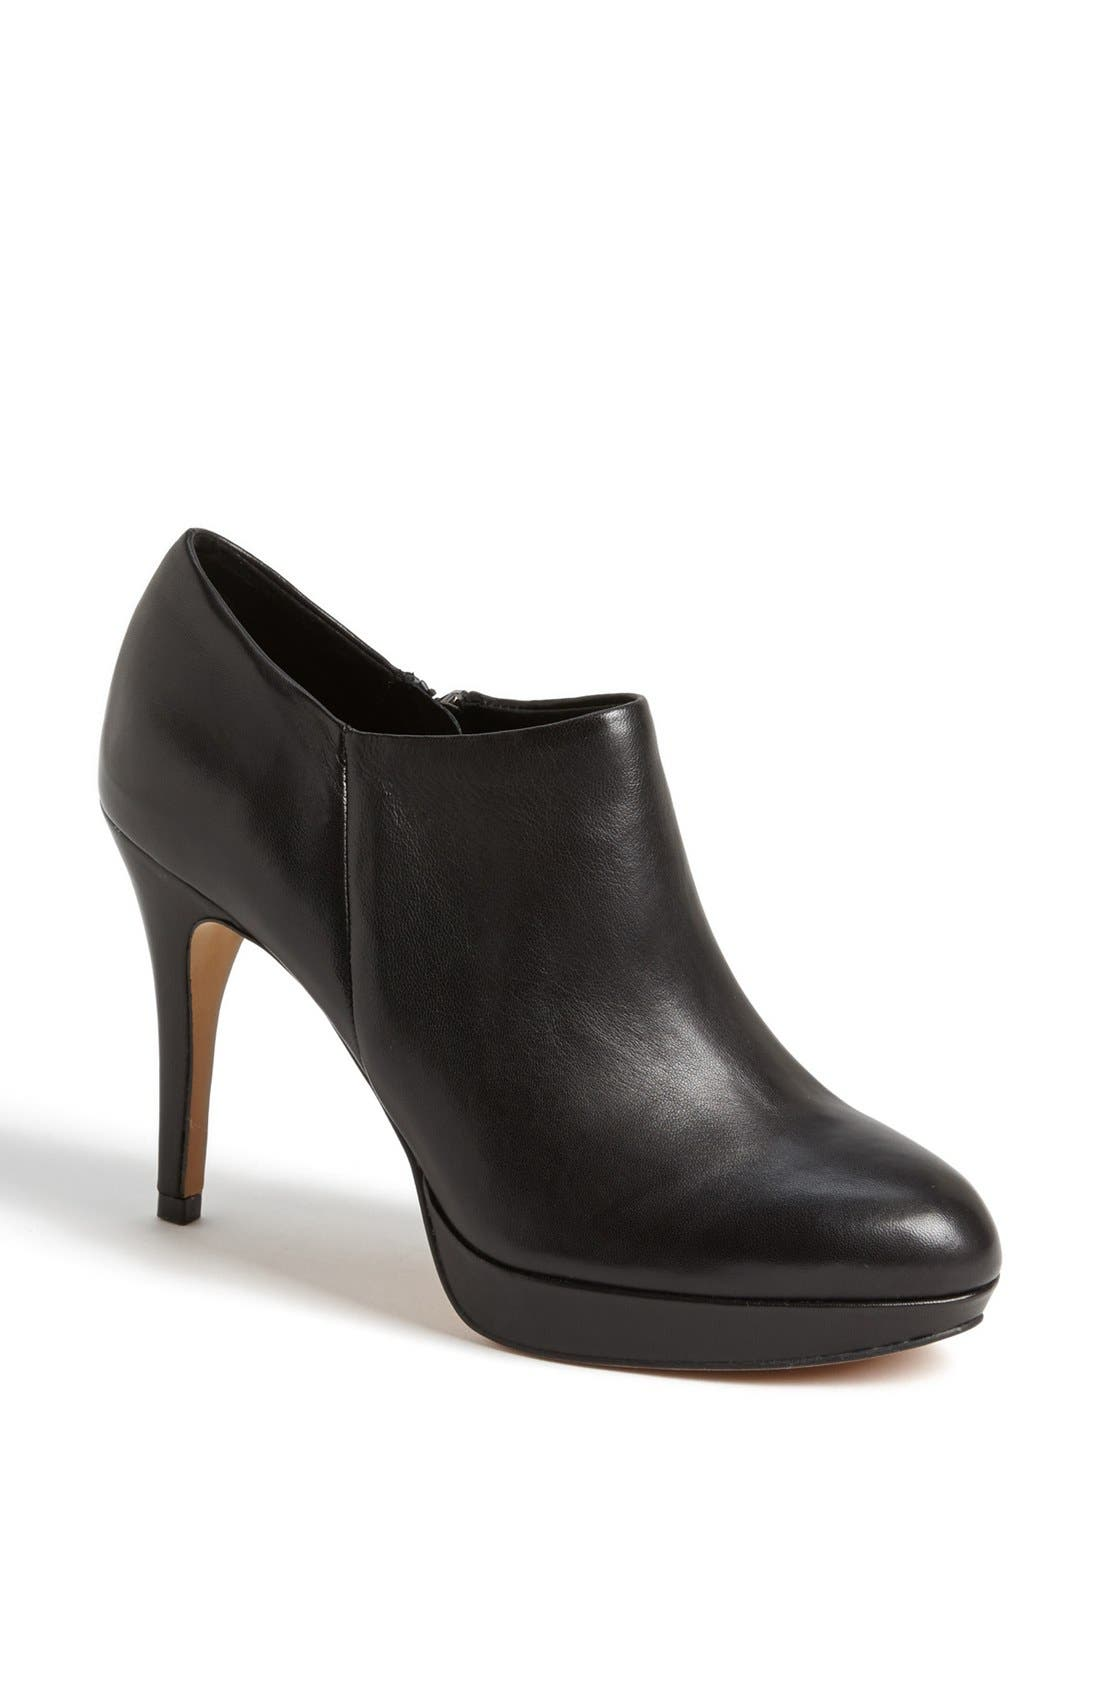 Alternate Image 1 Selected - Vince Camuto 'Elvin' Bootie